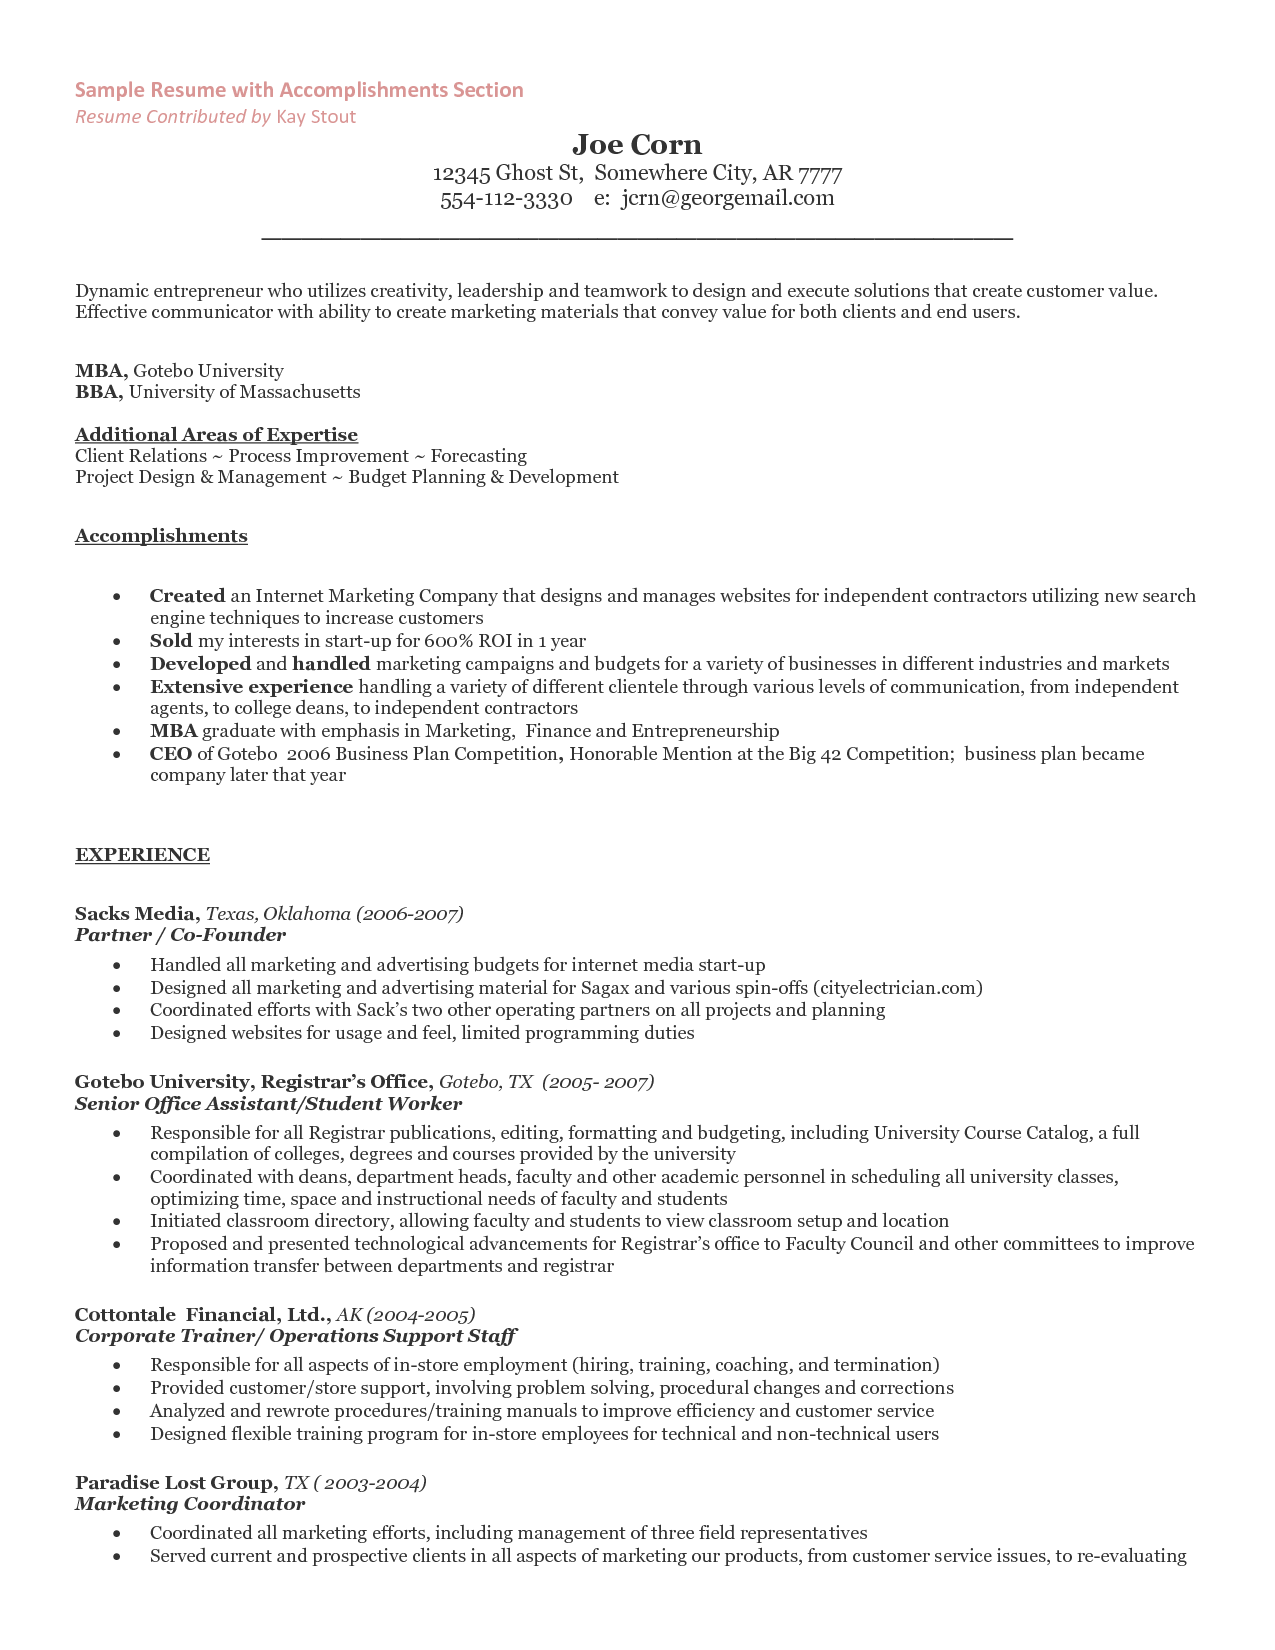 What Is The Best Format For A Resume The Entrepreneur Resume And Cover Letter What Should You Include